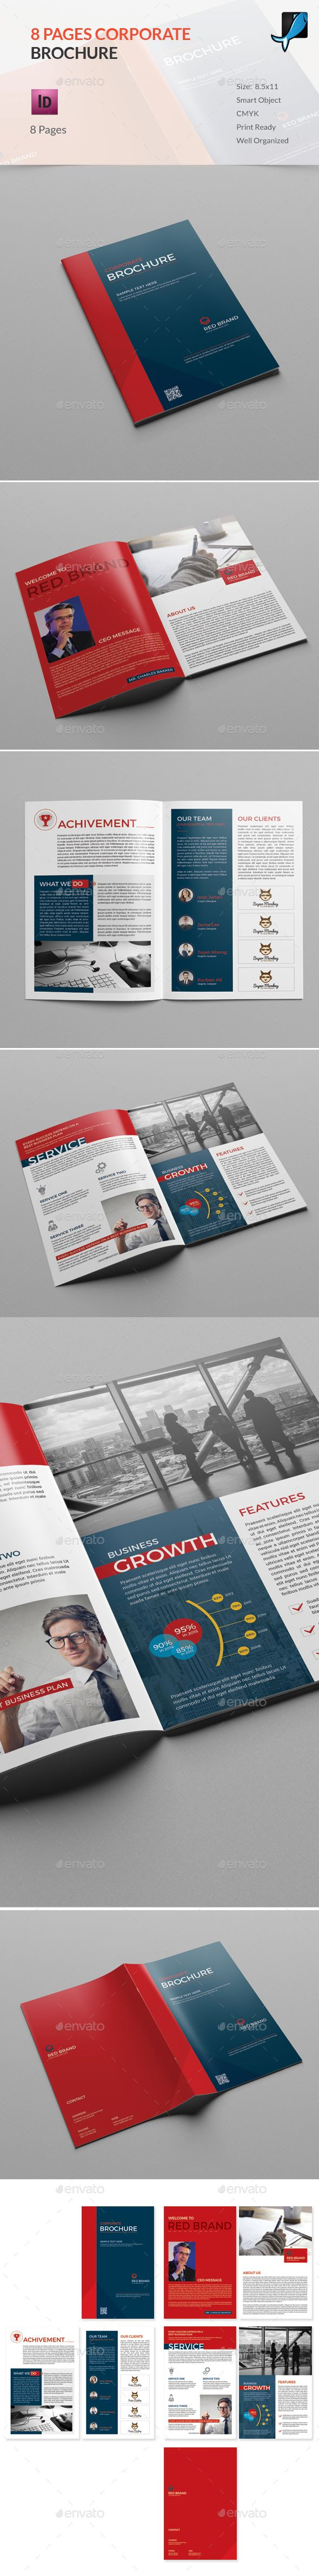 8 Pages Brochure  - InDesign Template • Only available here ➝ https://graphicriver.net/item/8-pages-indesign-brochure-template/16950159?ref=pxcr